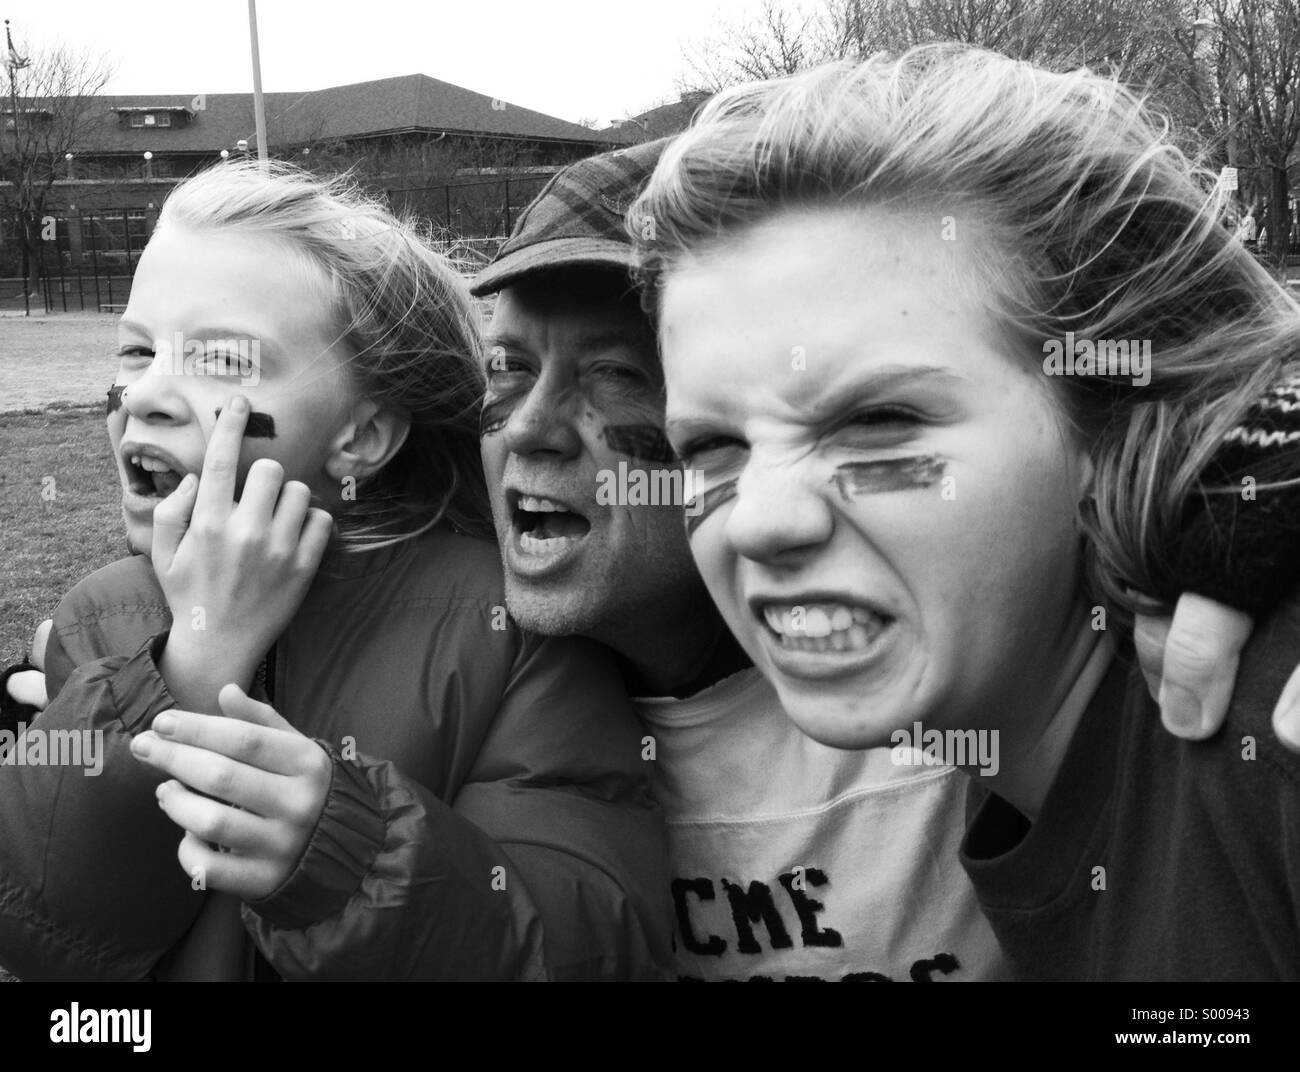 A father and his daughters get ready for a family game of football. - Stock Image